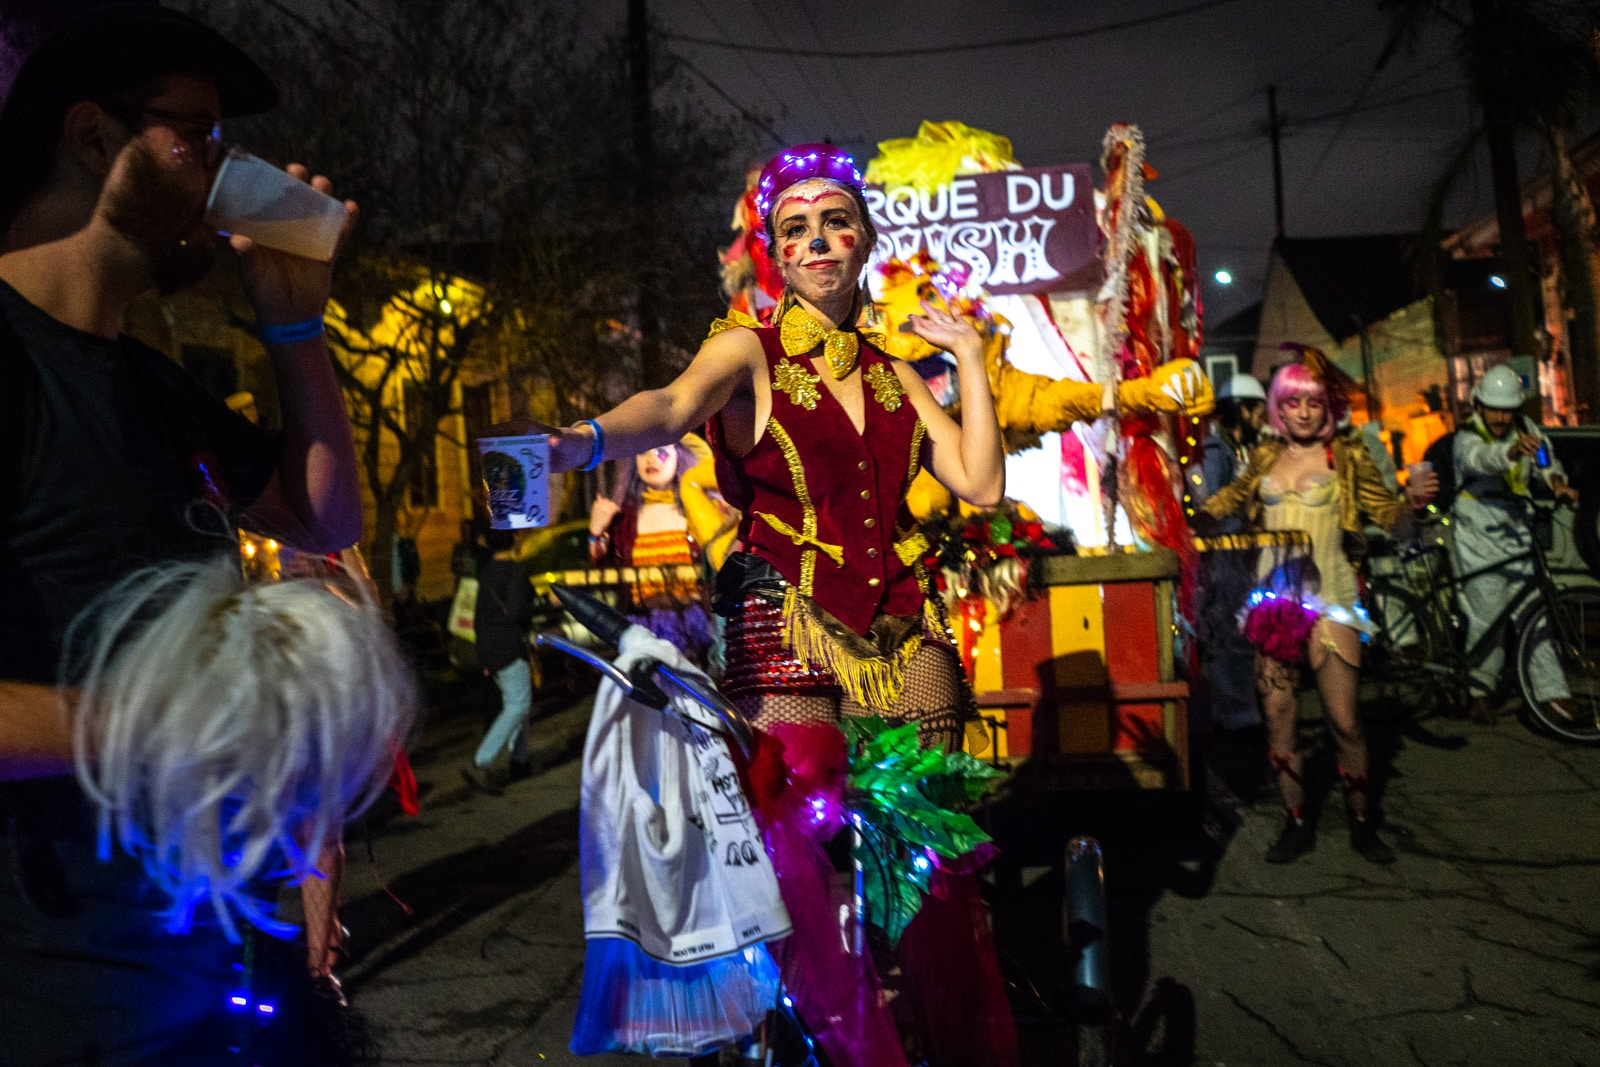 Girl cycling Krewe of Full Bush parade float in the Krewe Boheme Mardi Gras parade in New Orleans